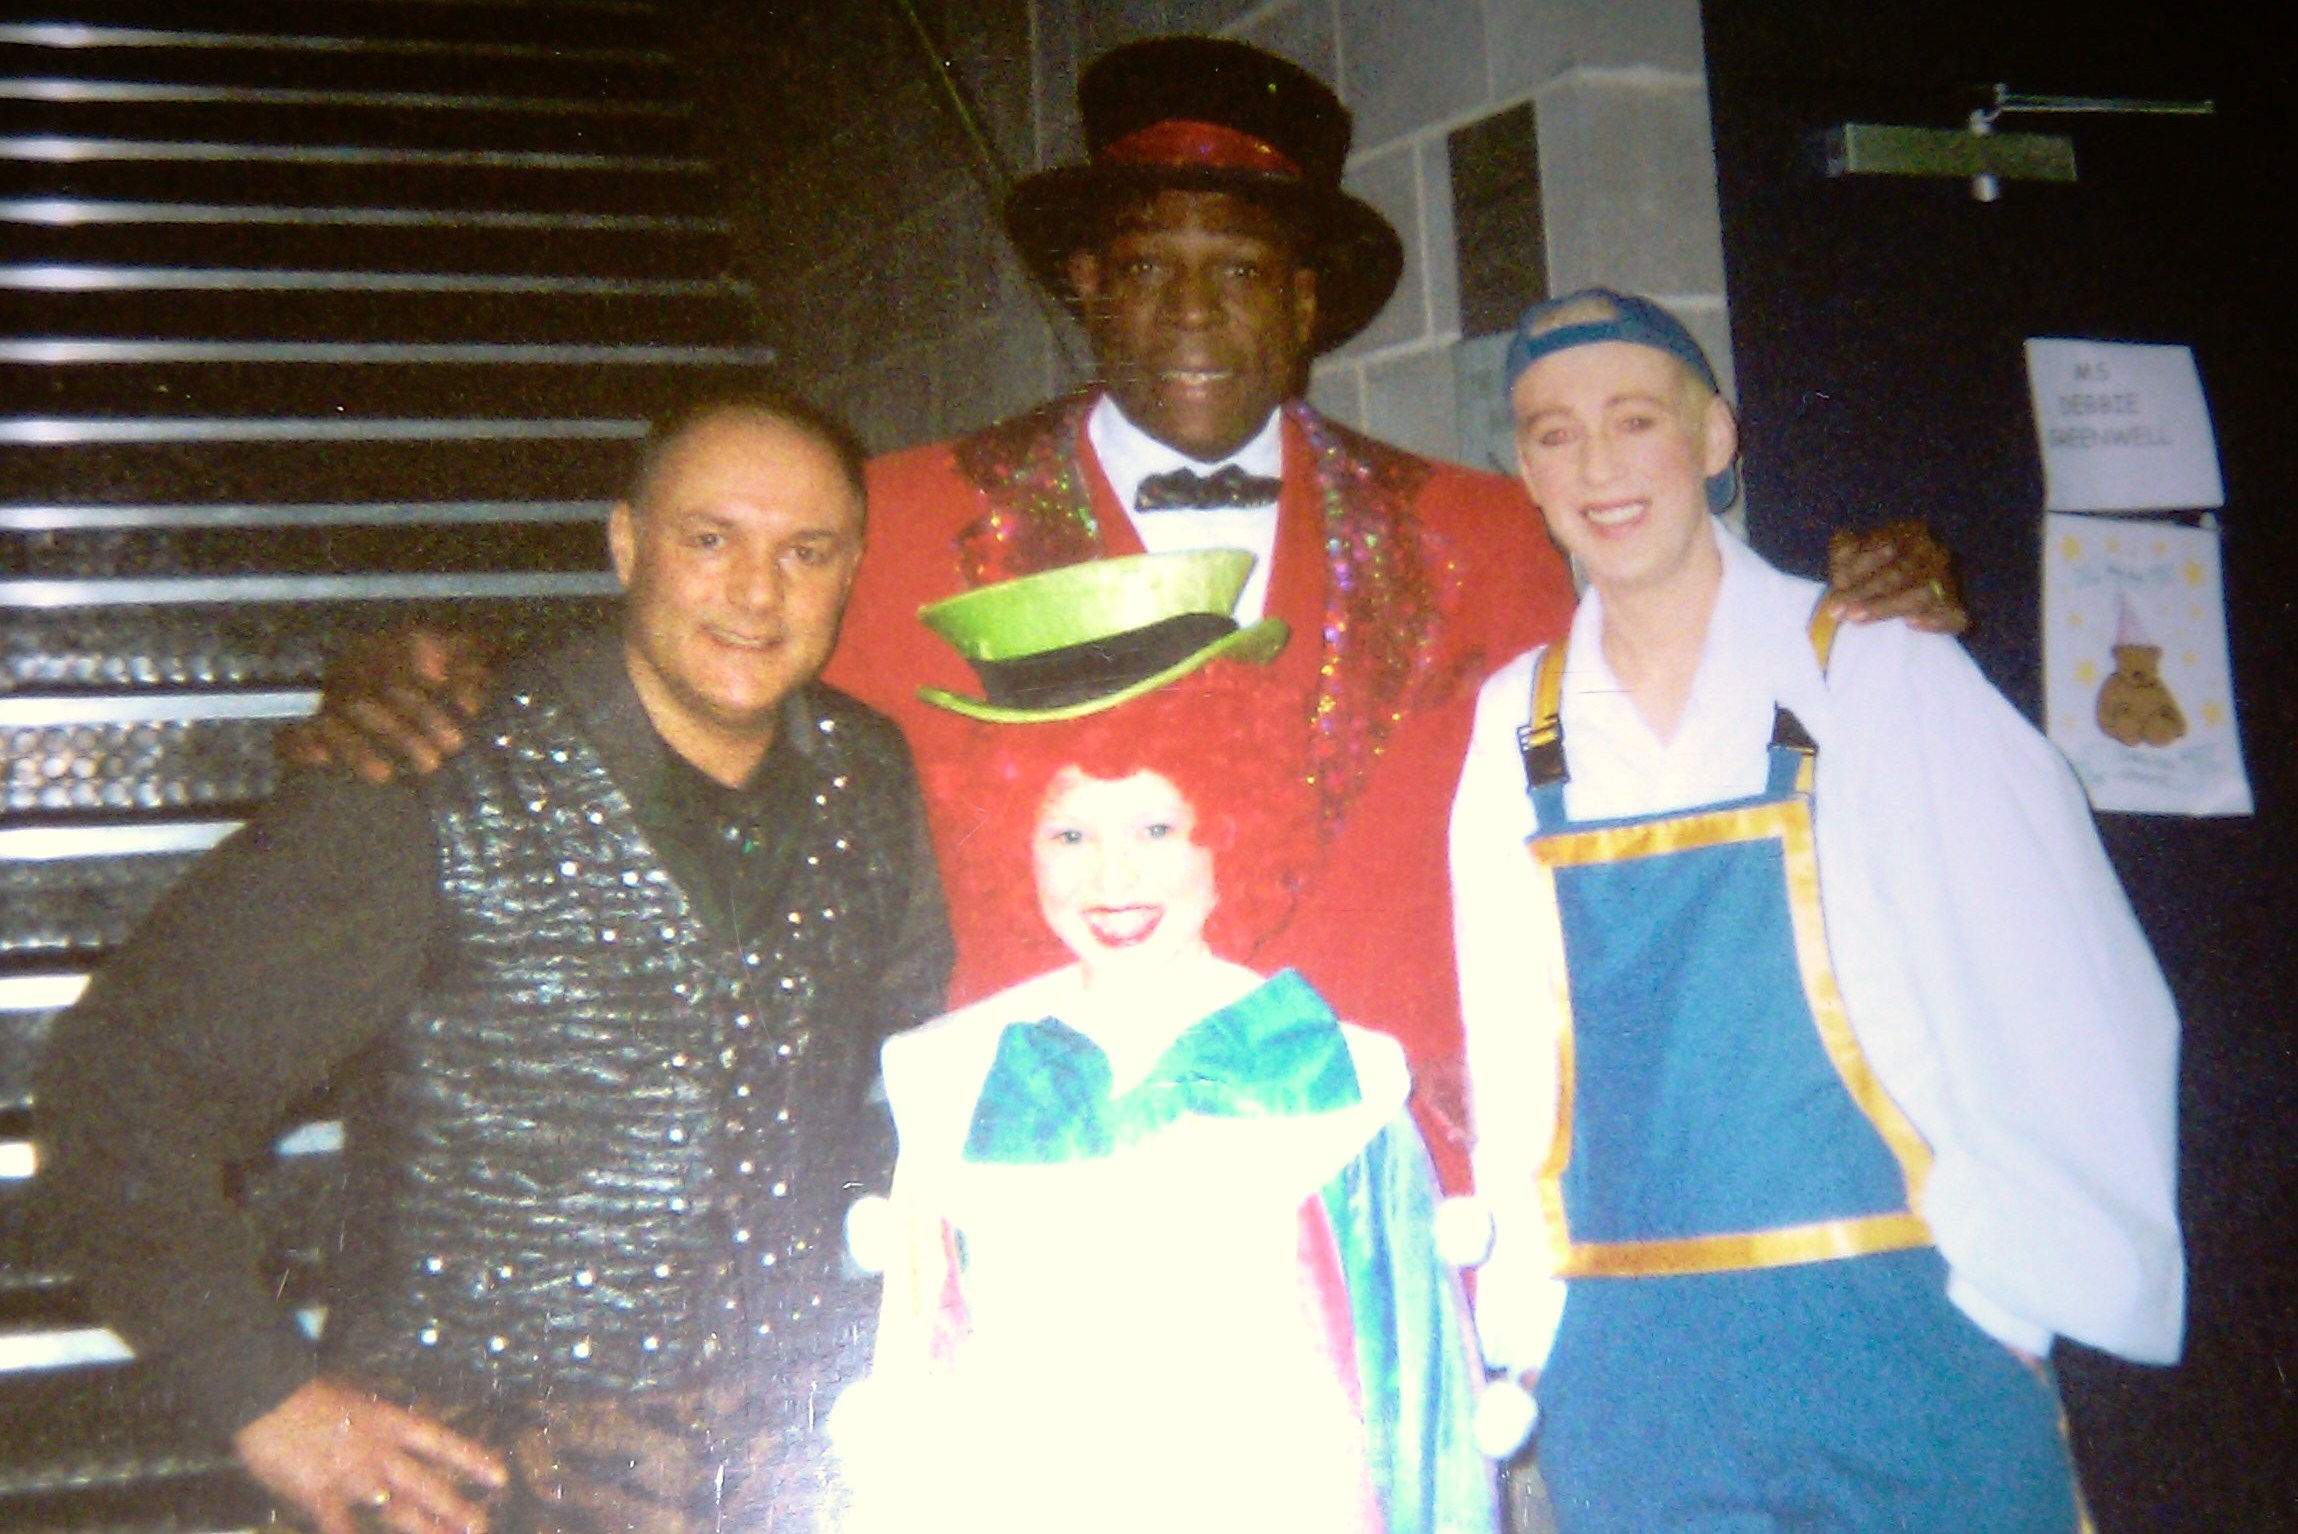 Trip down memory lane (all the way to the year 2000/2001 panto at MK Theatre!): Me, in costume, with Karl Howman, Frank Bruno and Richard Cadell for the circus-themed 'Goldilocks and the Three Bears'.